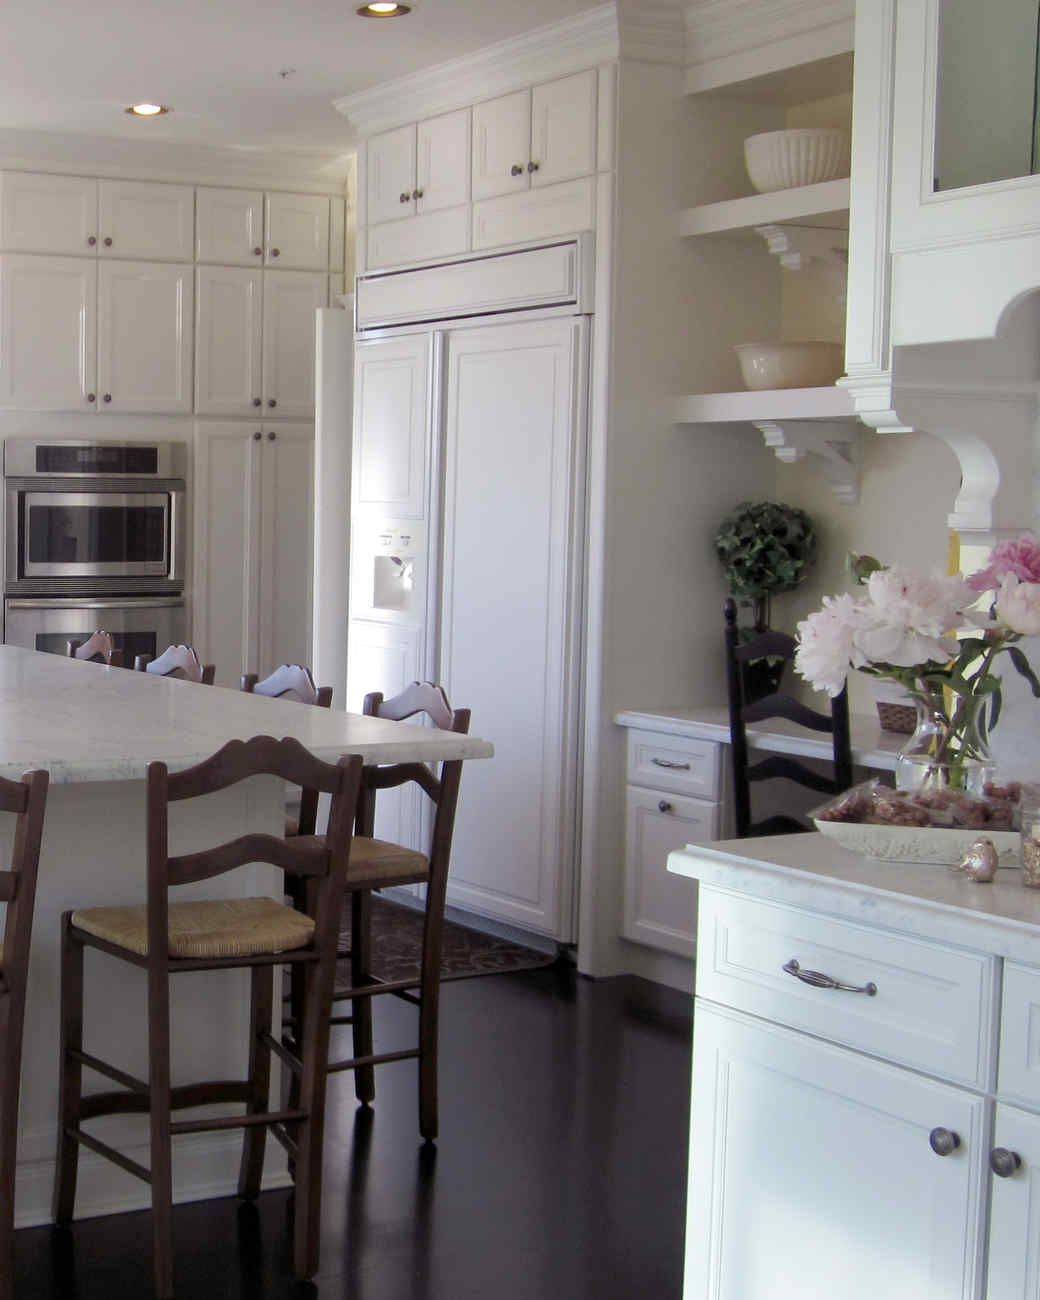 Design Your Own Kitchen: 20 Beautiful, Functional Kitchens To Inspire Your Own